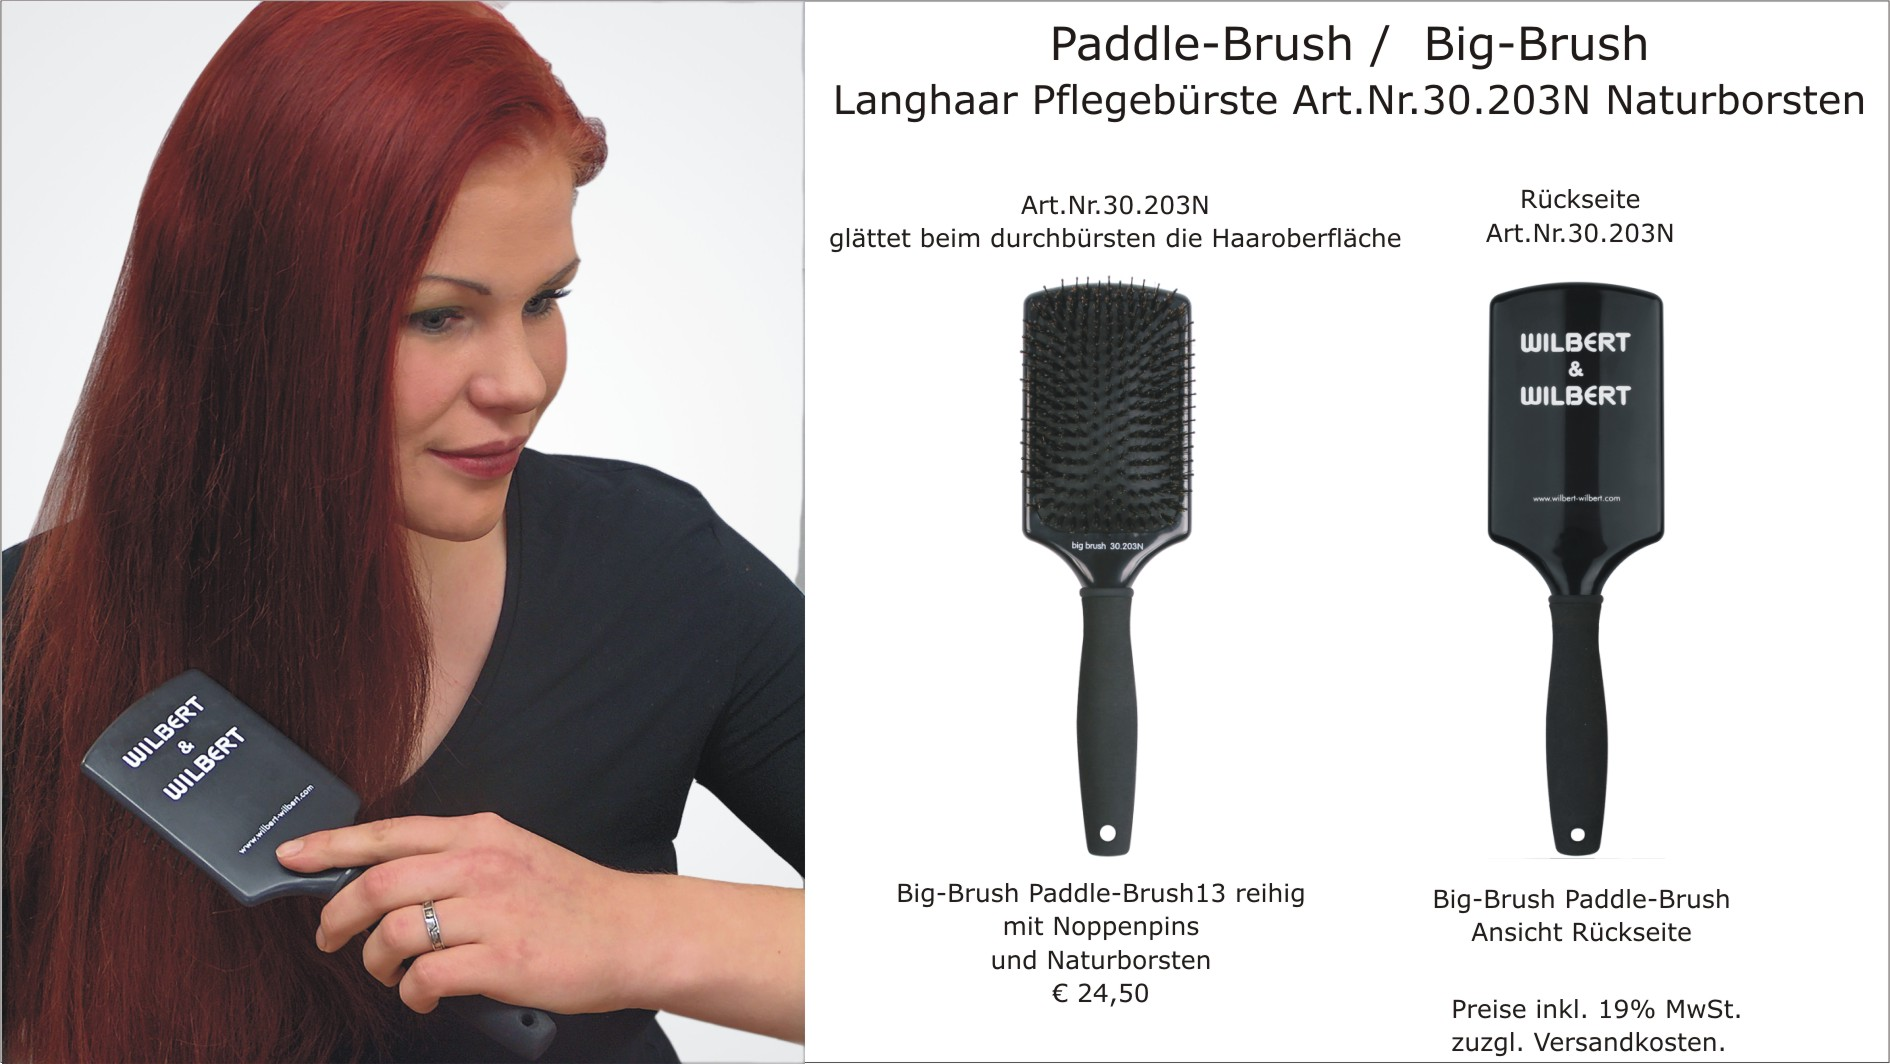 Paddle Brush / Big Brush Natur